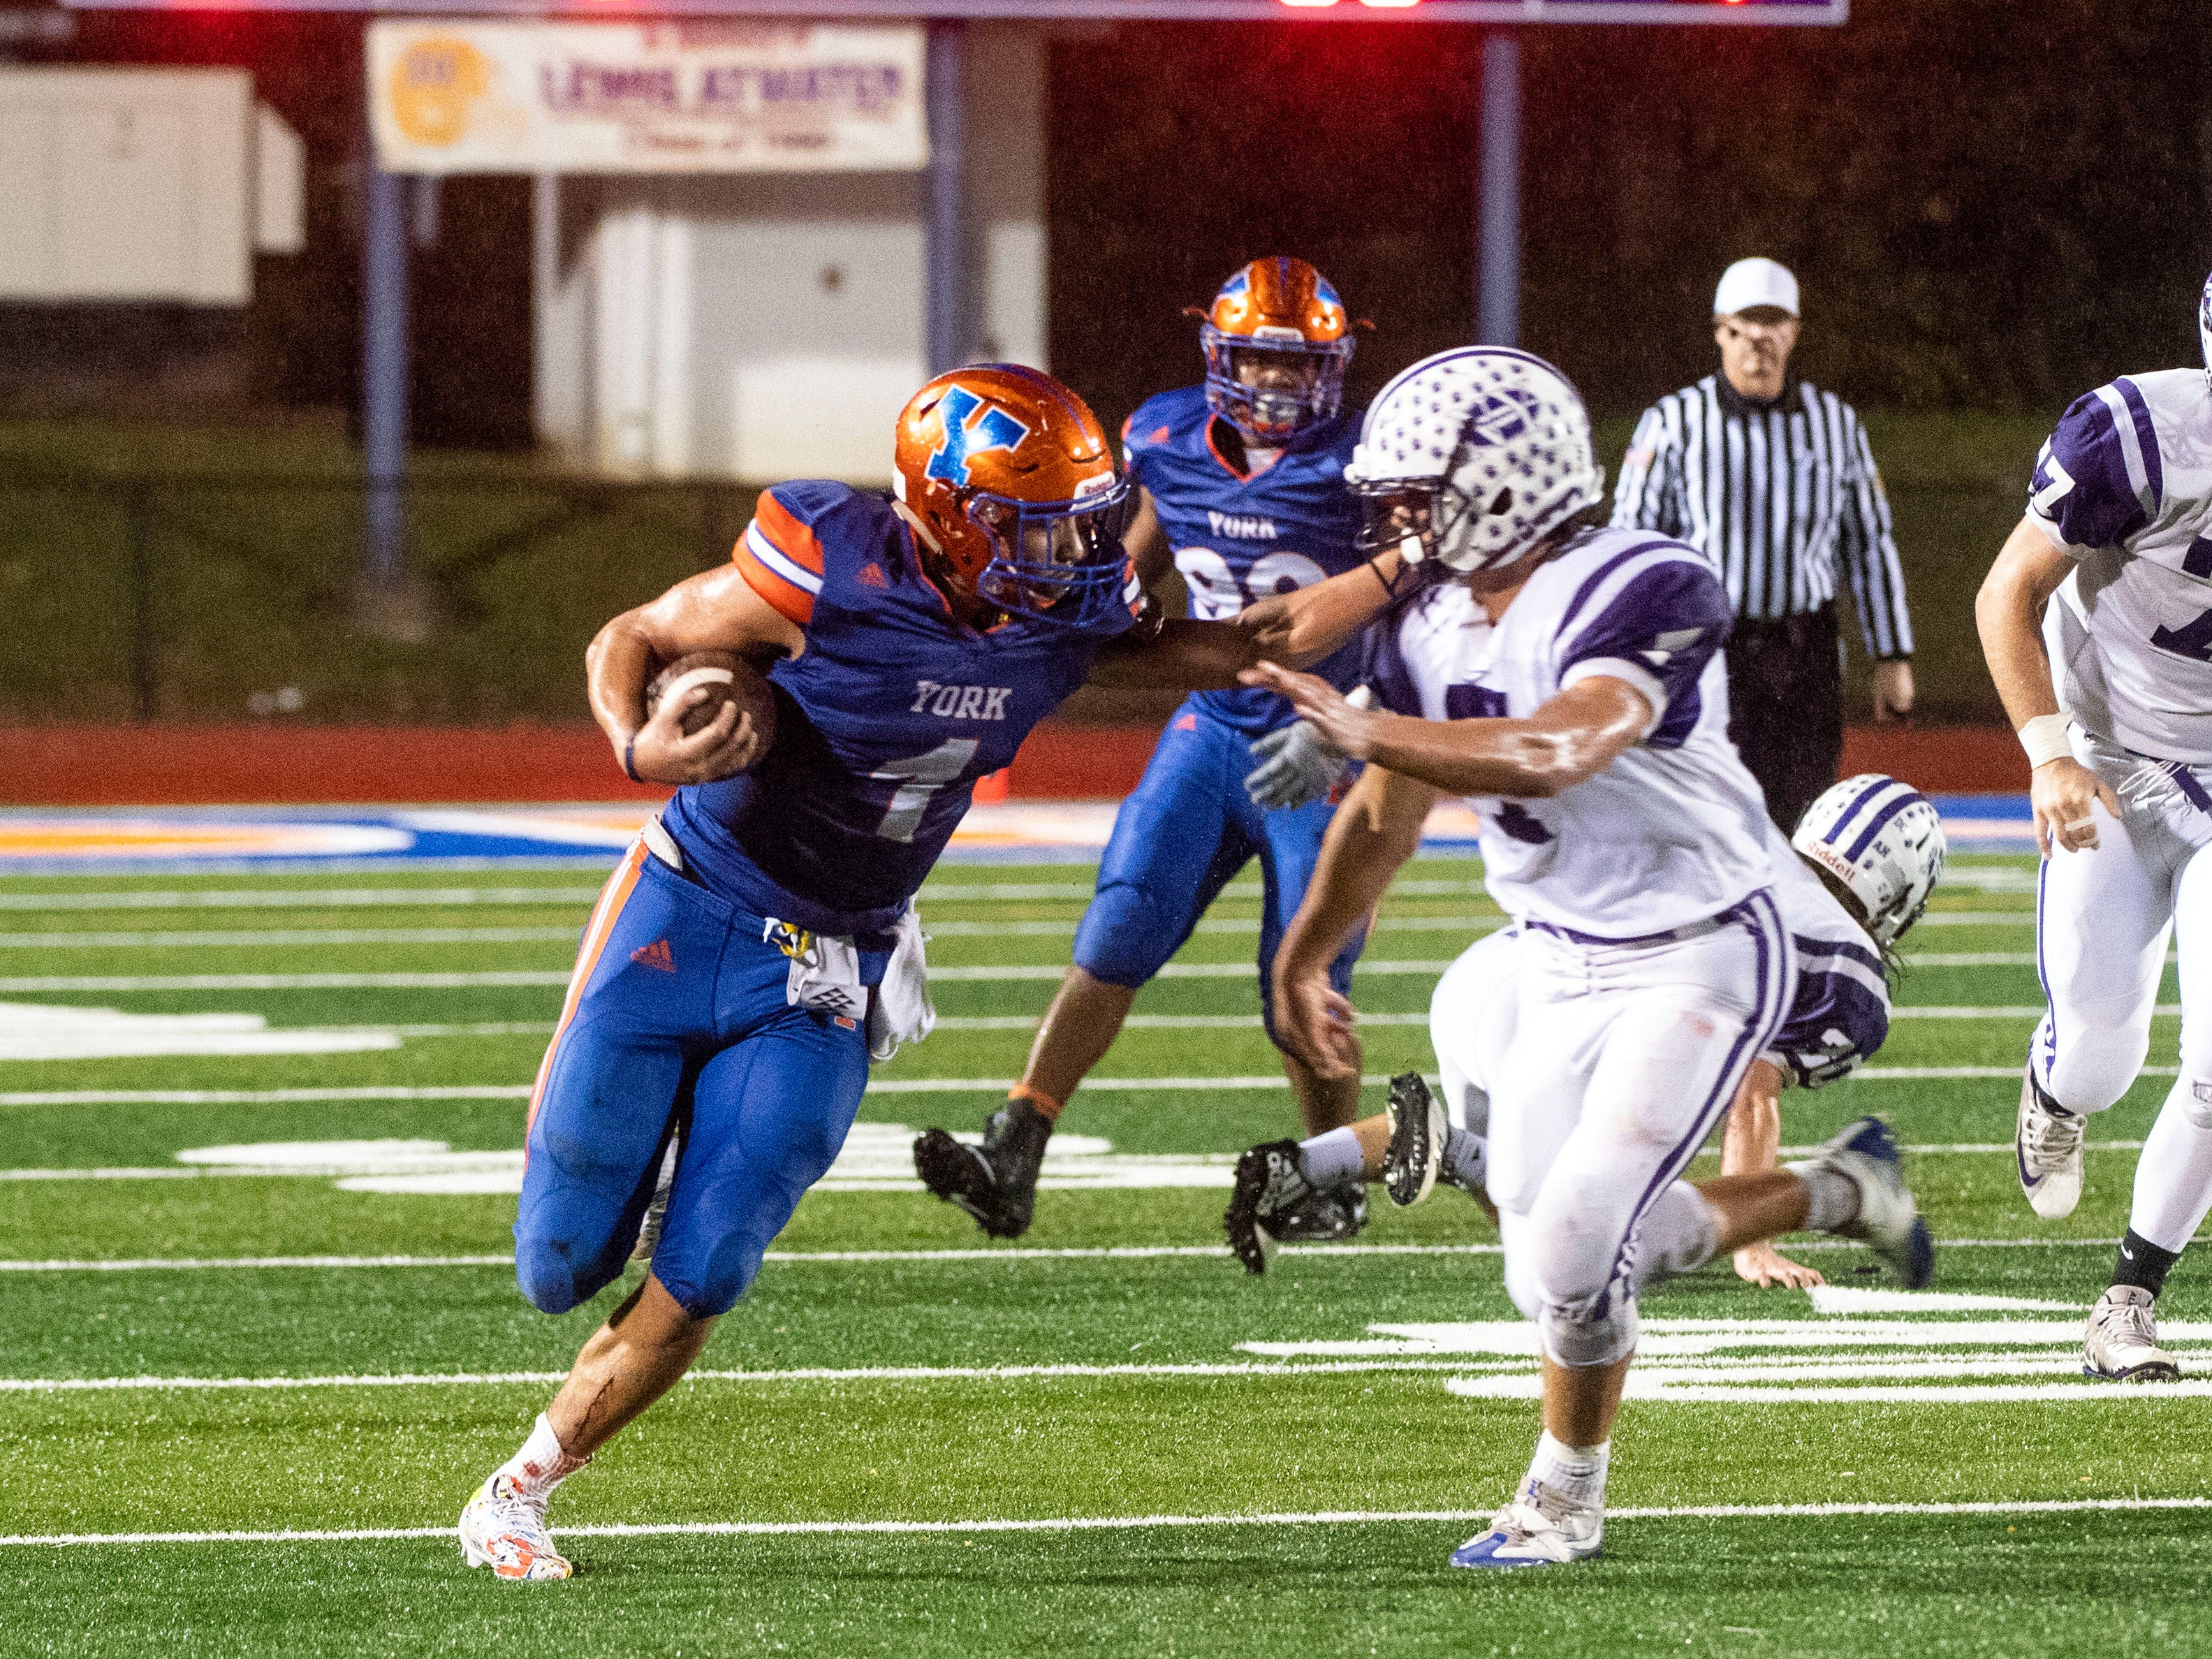 York High's Dayjure Stewart breaks District 3 rushing record in win over Northern